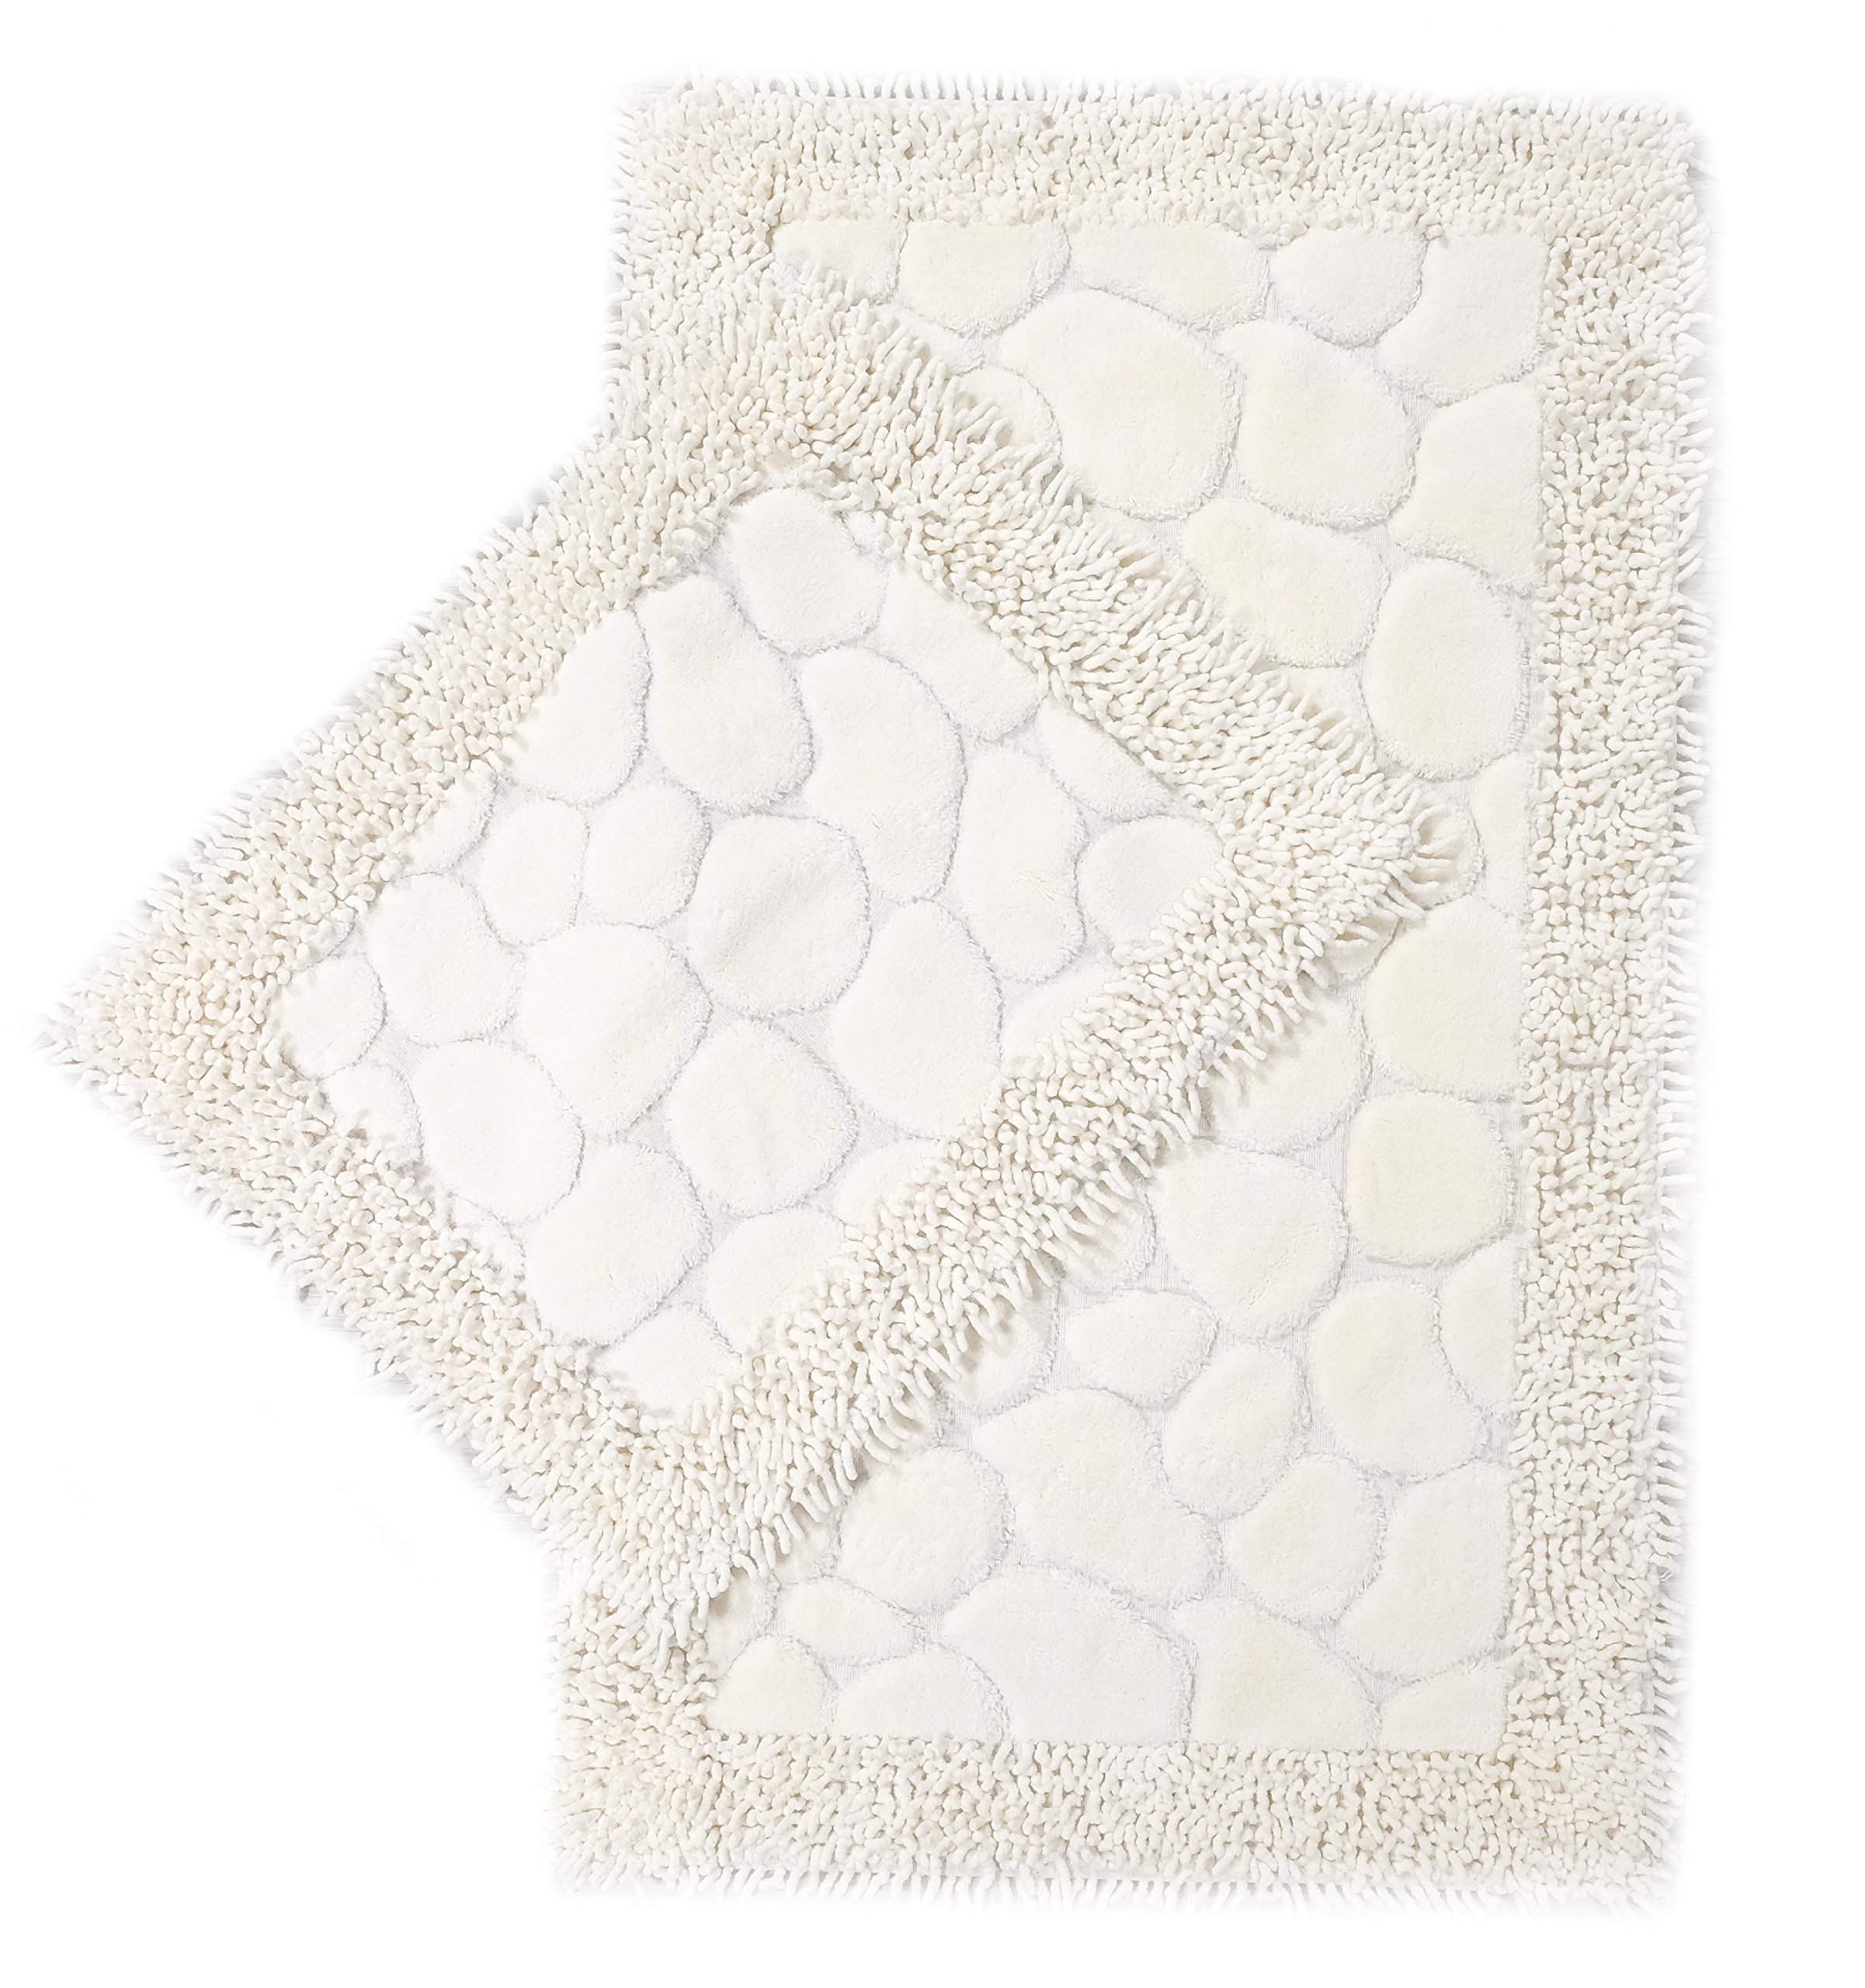 Luxury Soft Cotton Patterned Bath-Mat Set, 2 Piece, Bathroom & Kitchen Shaggy Runner, Machine Washable, Absorbent, Quick-Dry, Shower, Bathtub & Toilet Step Out Rug (Stone Cream) (23''x19'' plus 23''x40'')